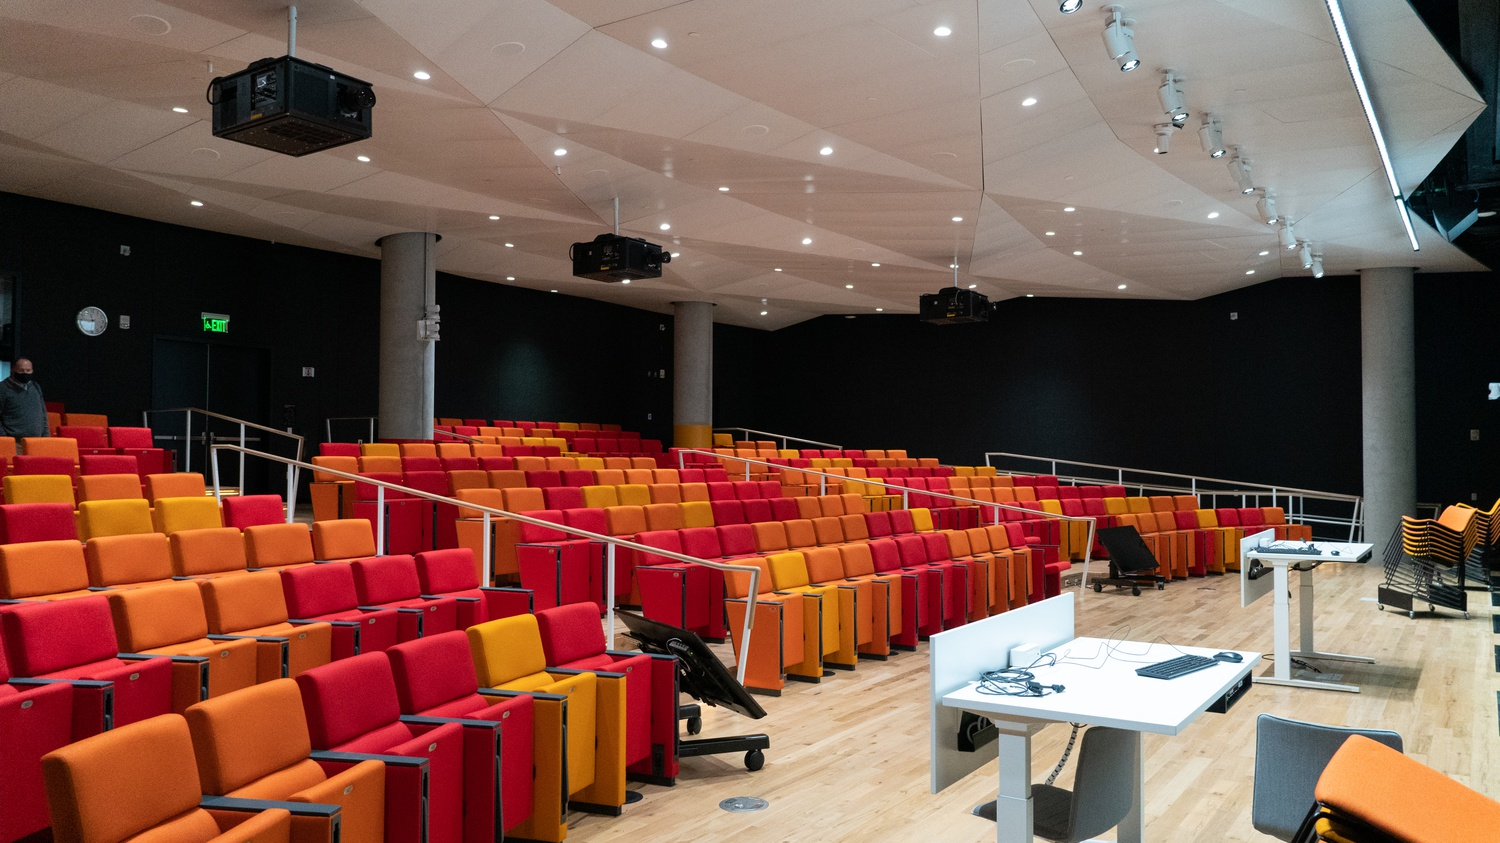 The SEC's largest lecture hall seats 300 occupants. It features its own audiovisual control room, projectors, and chalkboards.